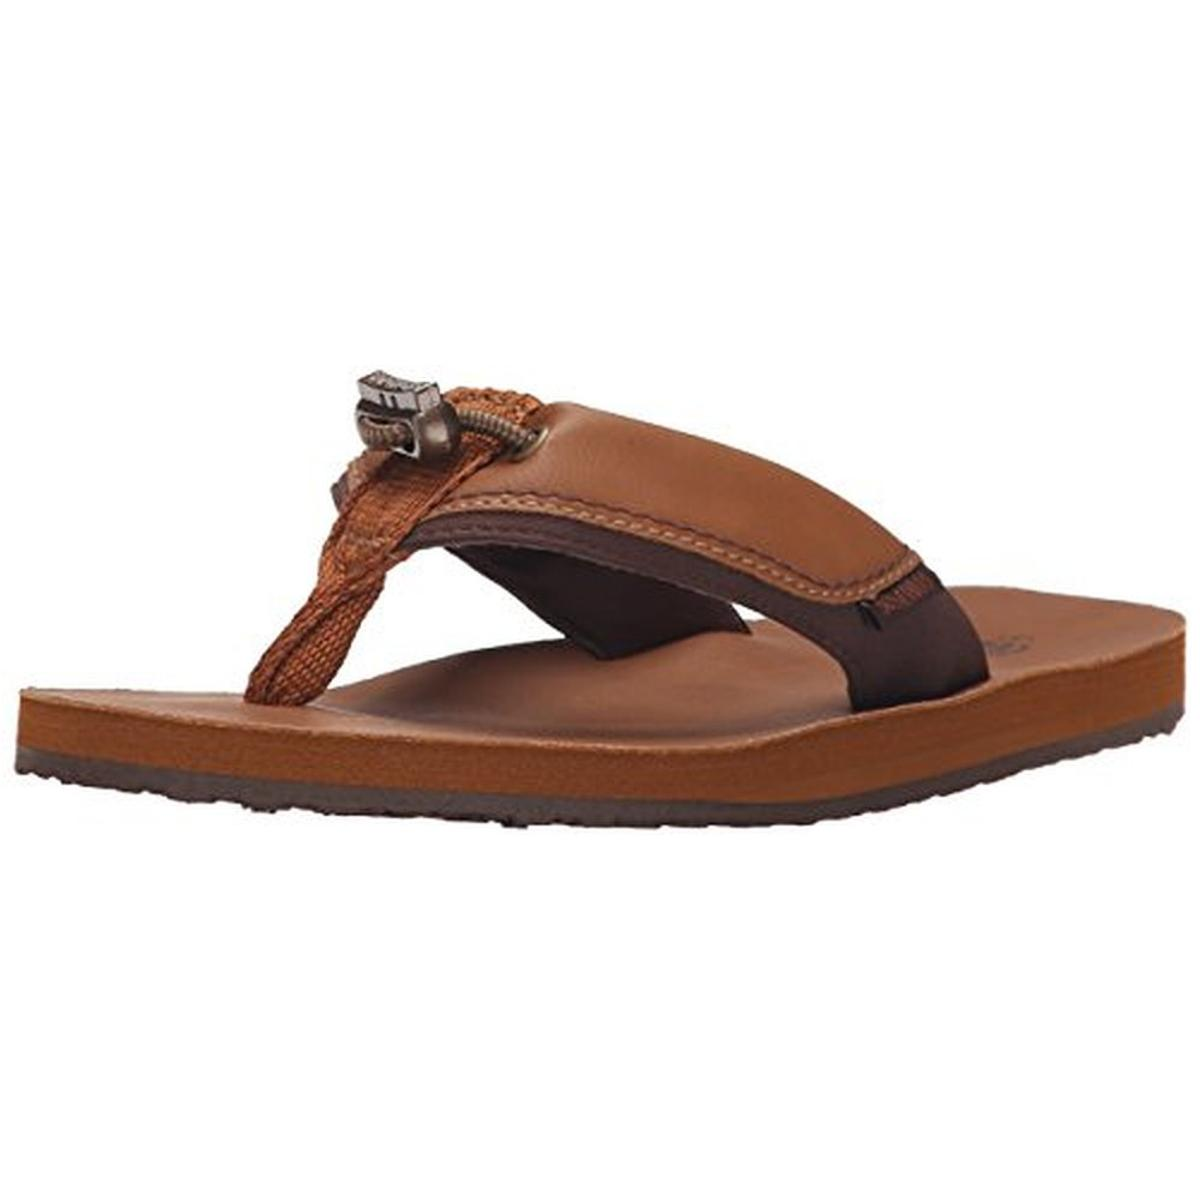 Cudas Womens Warwick Faux Leather Drawstring Flip-Flops by Cudas